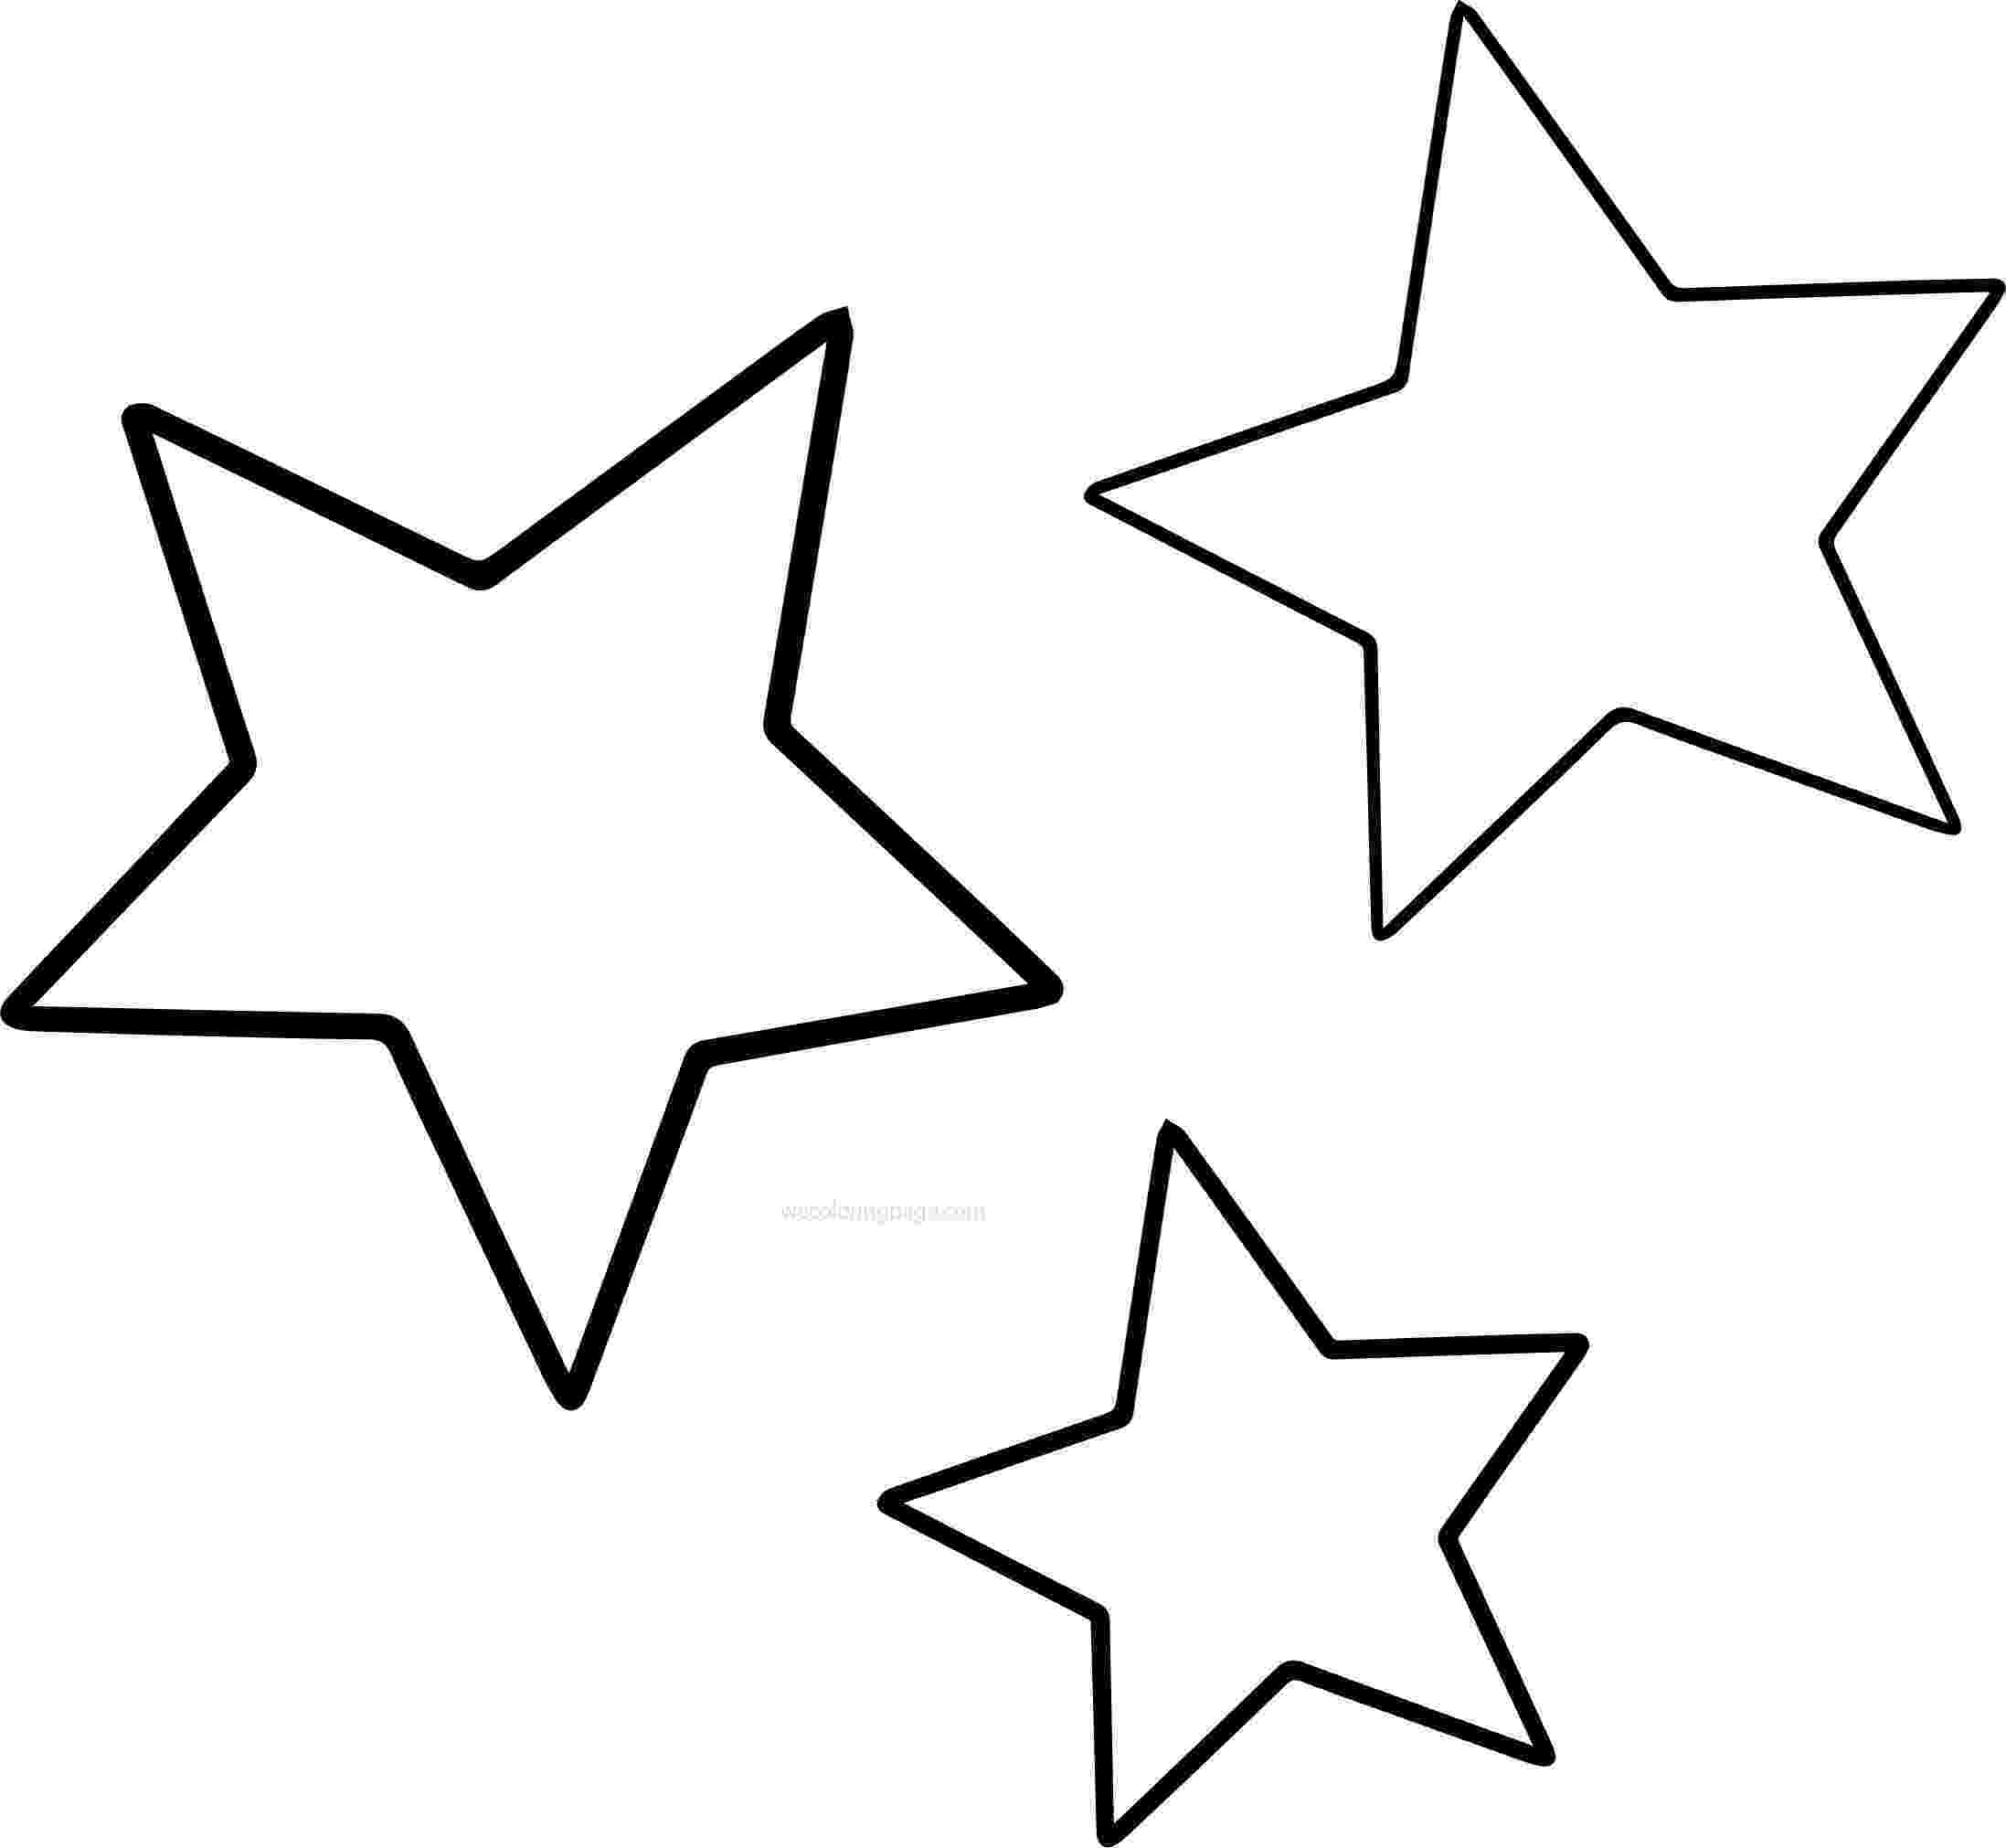 picture of a star to color star coloring pages getcoloringpagescom a color to of picture star